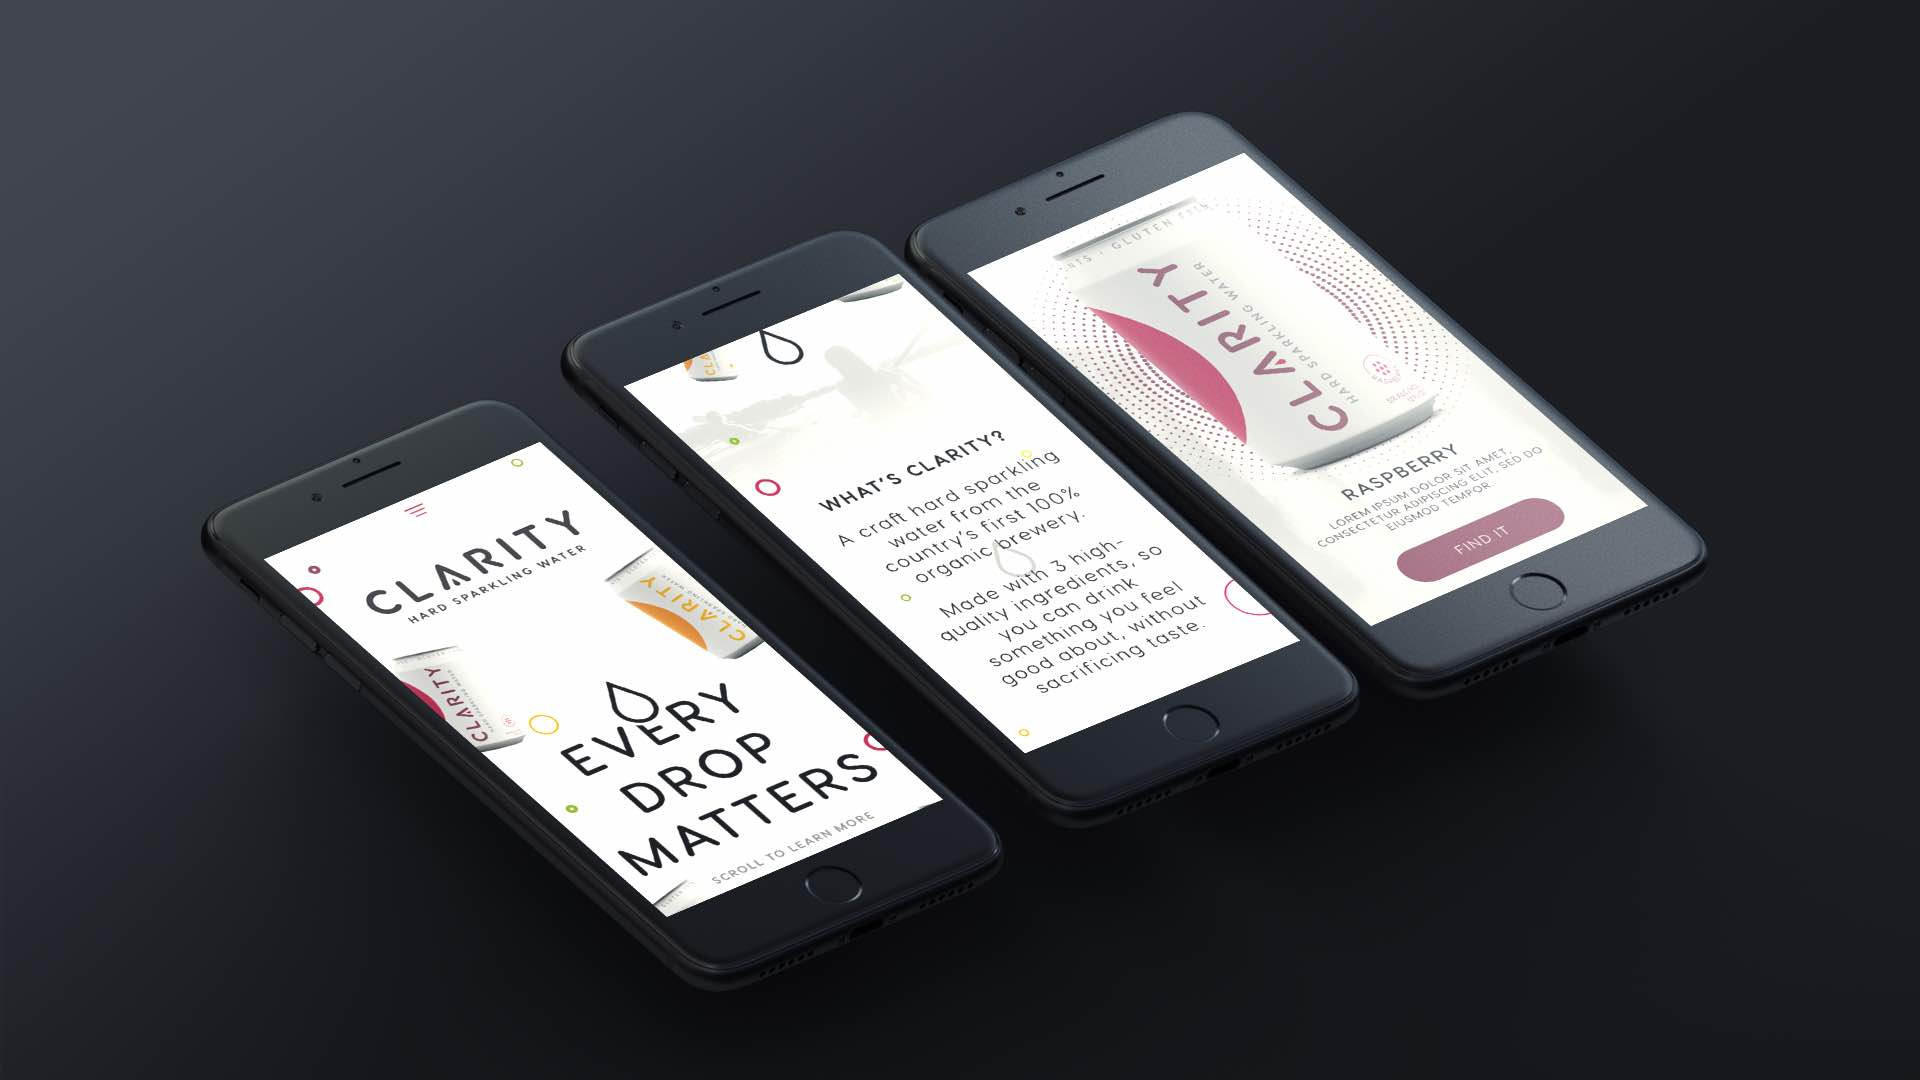 Clarity hard sparkling water website design and development mobile website